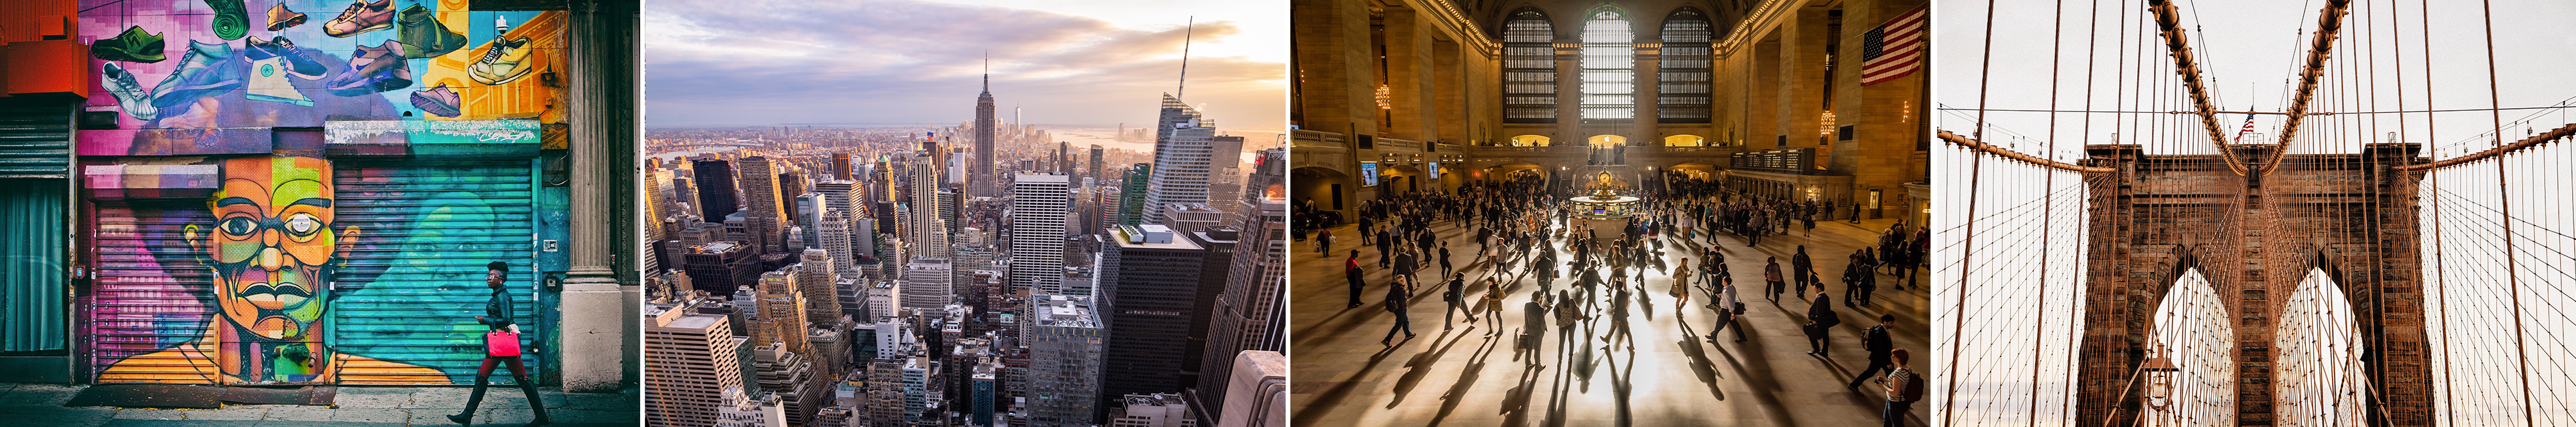 A collage of New York City pictures, including the Brooklyn Bridge, Grand Central Terminal, a skyline view with the Empire State Building, and a close up of a building with a mural on it